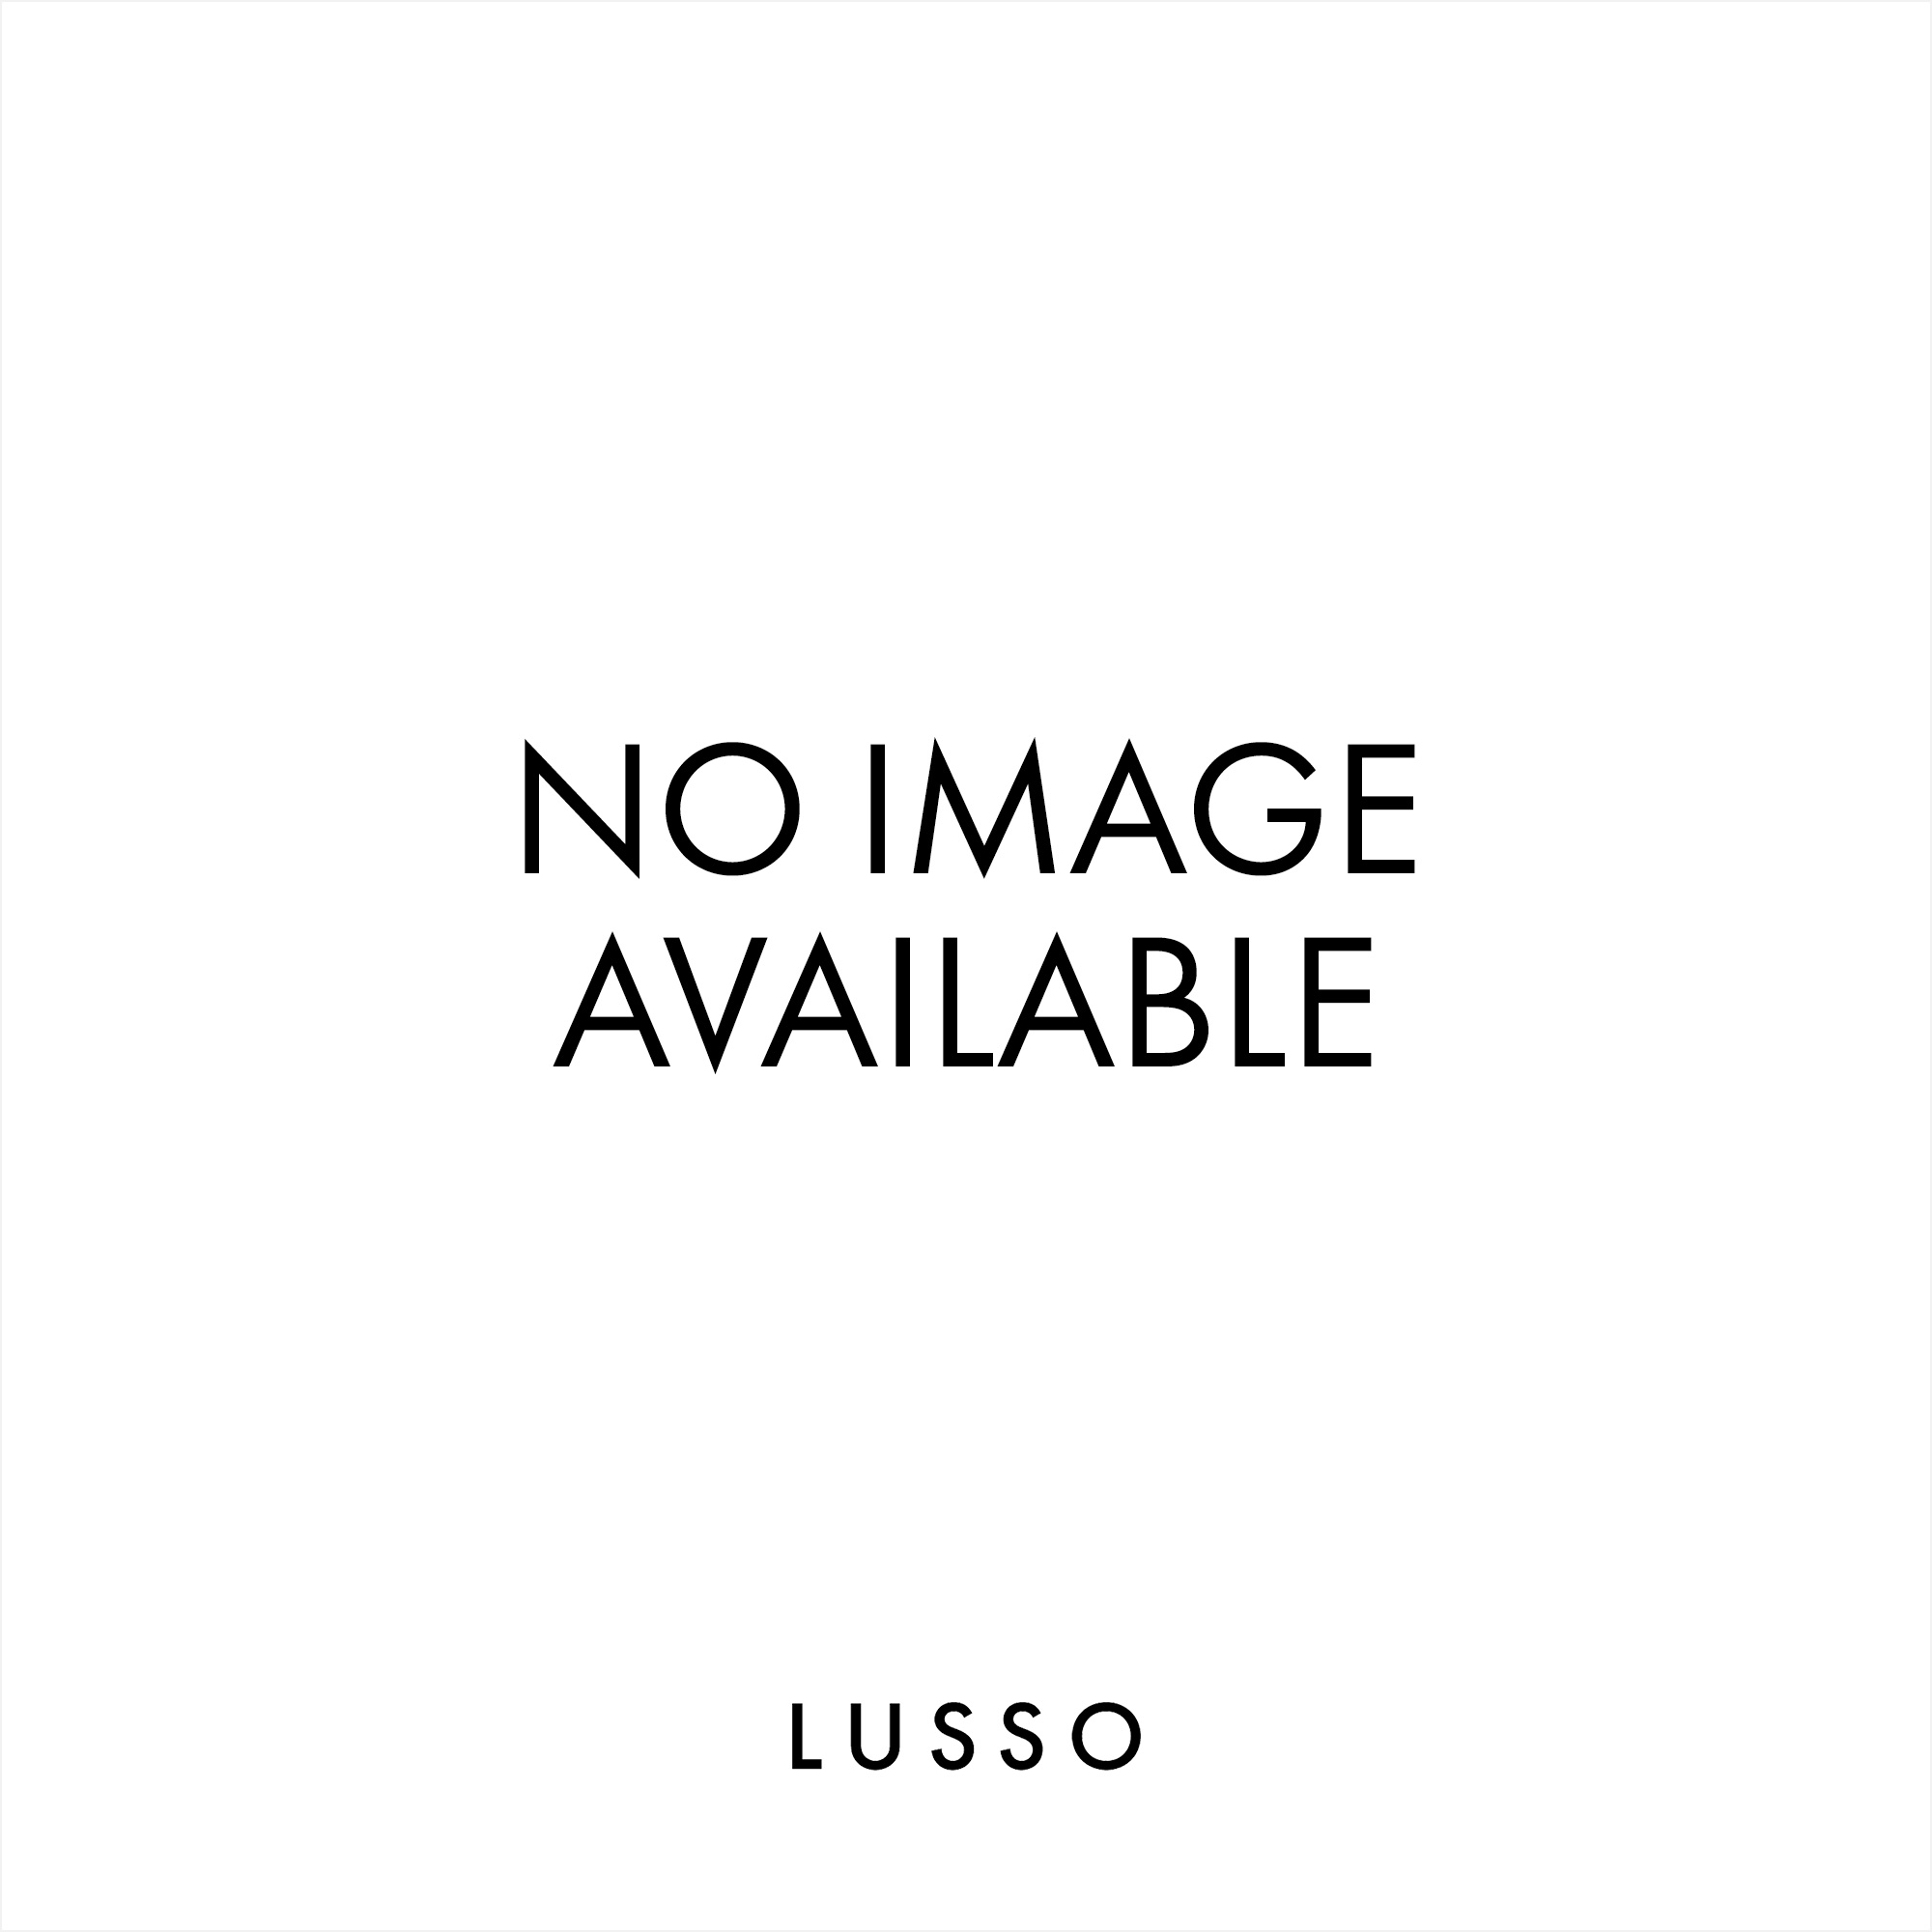 Lusso Stone Lissoni Stone Resin Counter Top Basin 585